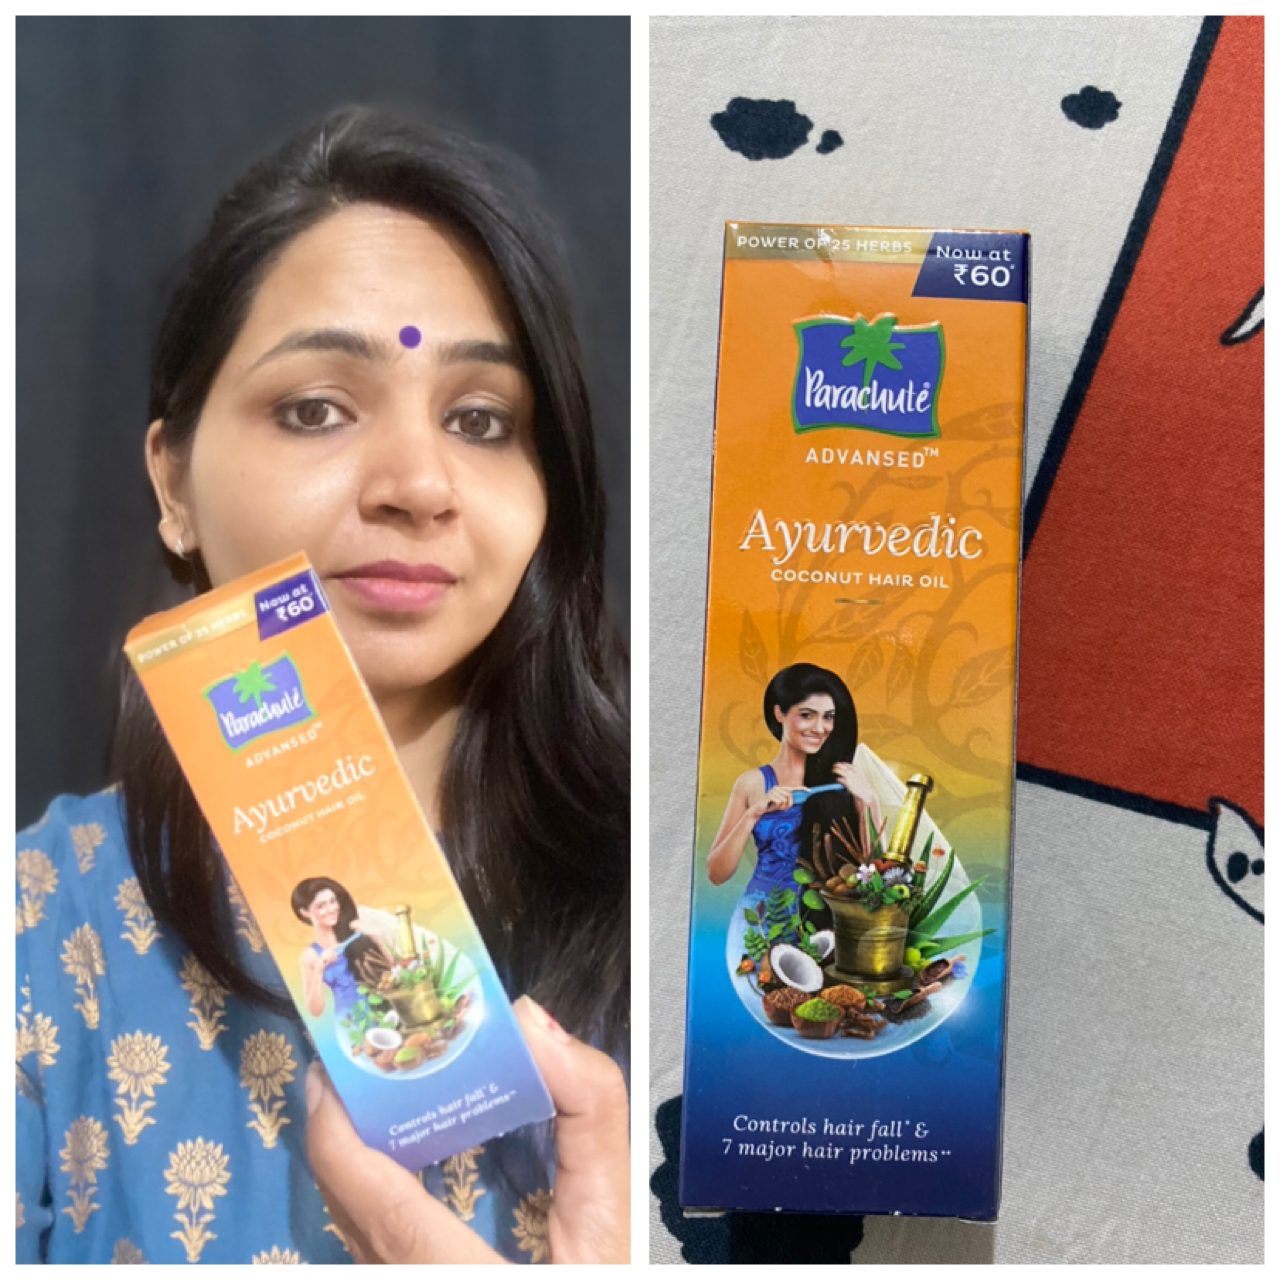 Parachute Advansed Ayurvedic Coconut Hair Oil pic 1-ONE OF BEST AYURVEDIC FORMULATION TO USE-By dr_archana_pandey_microbiologist